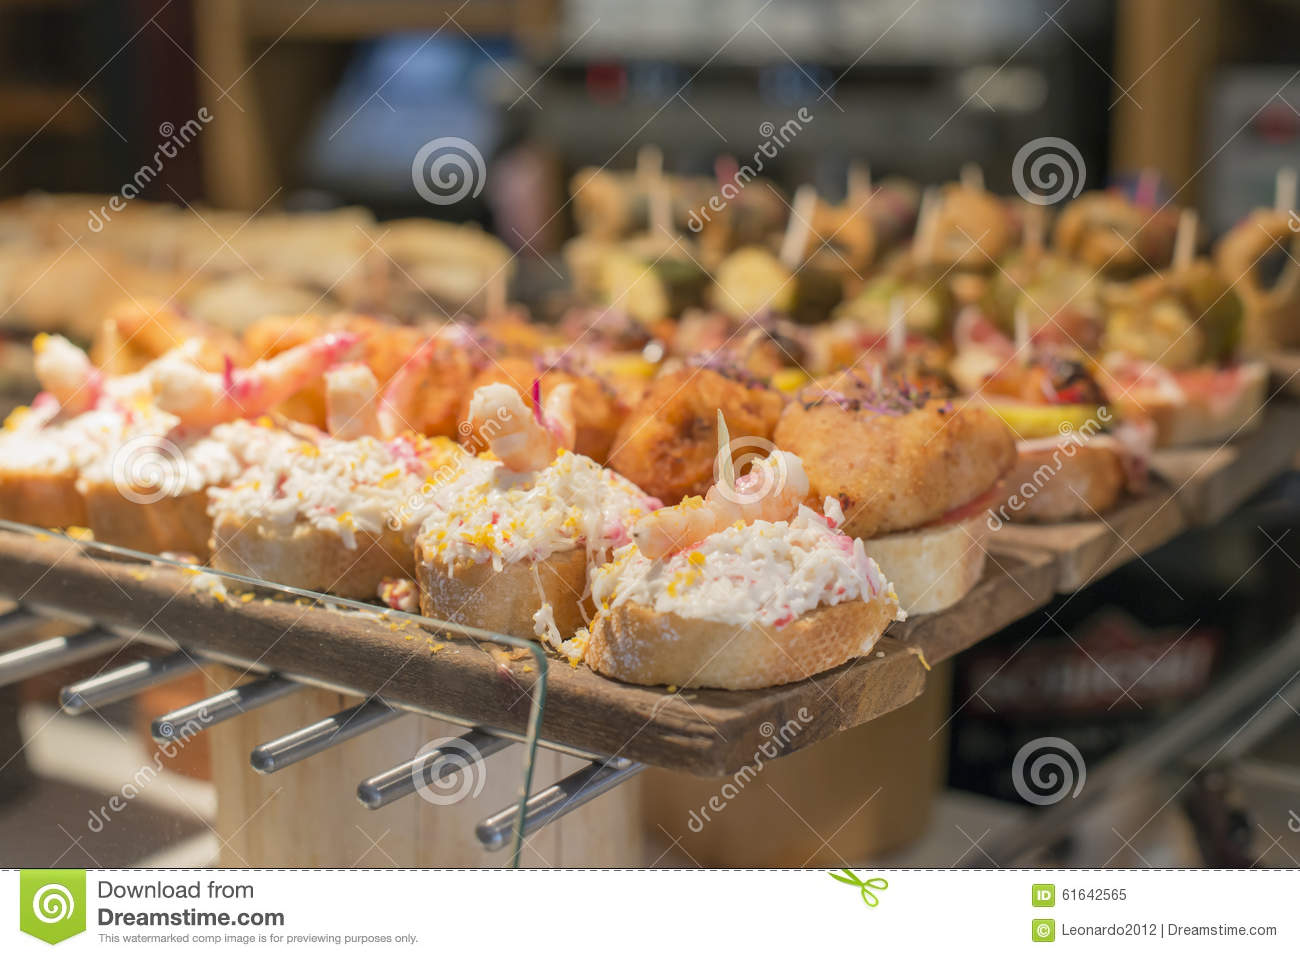 spanish mixed tapas basque cuisine pintxos bilbao spain stock image image of food cusine. Black Bedroom Furniture Sets. Home Design Ideas